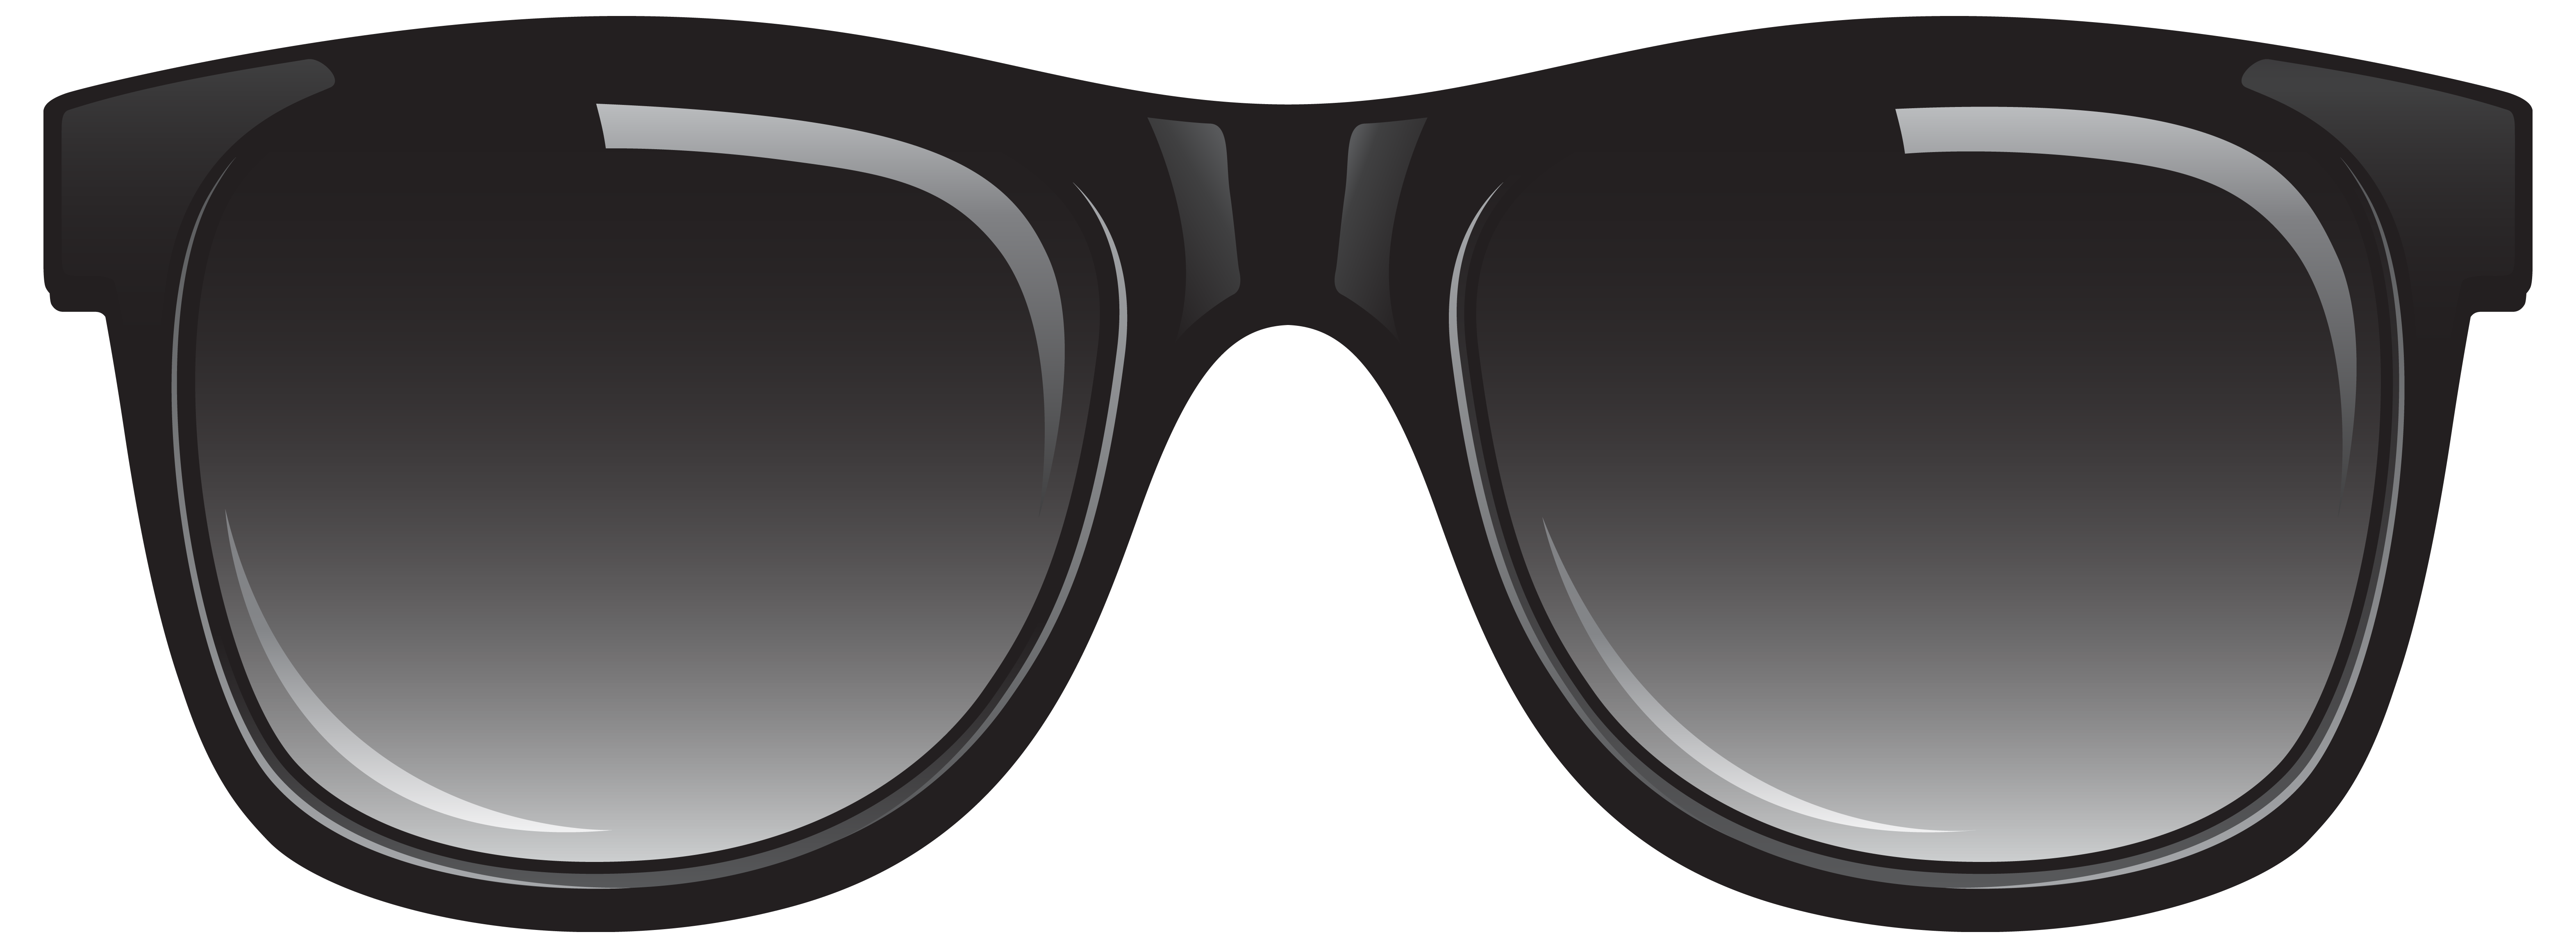 Sunglasses Png For Editing Hd.